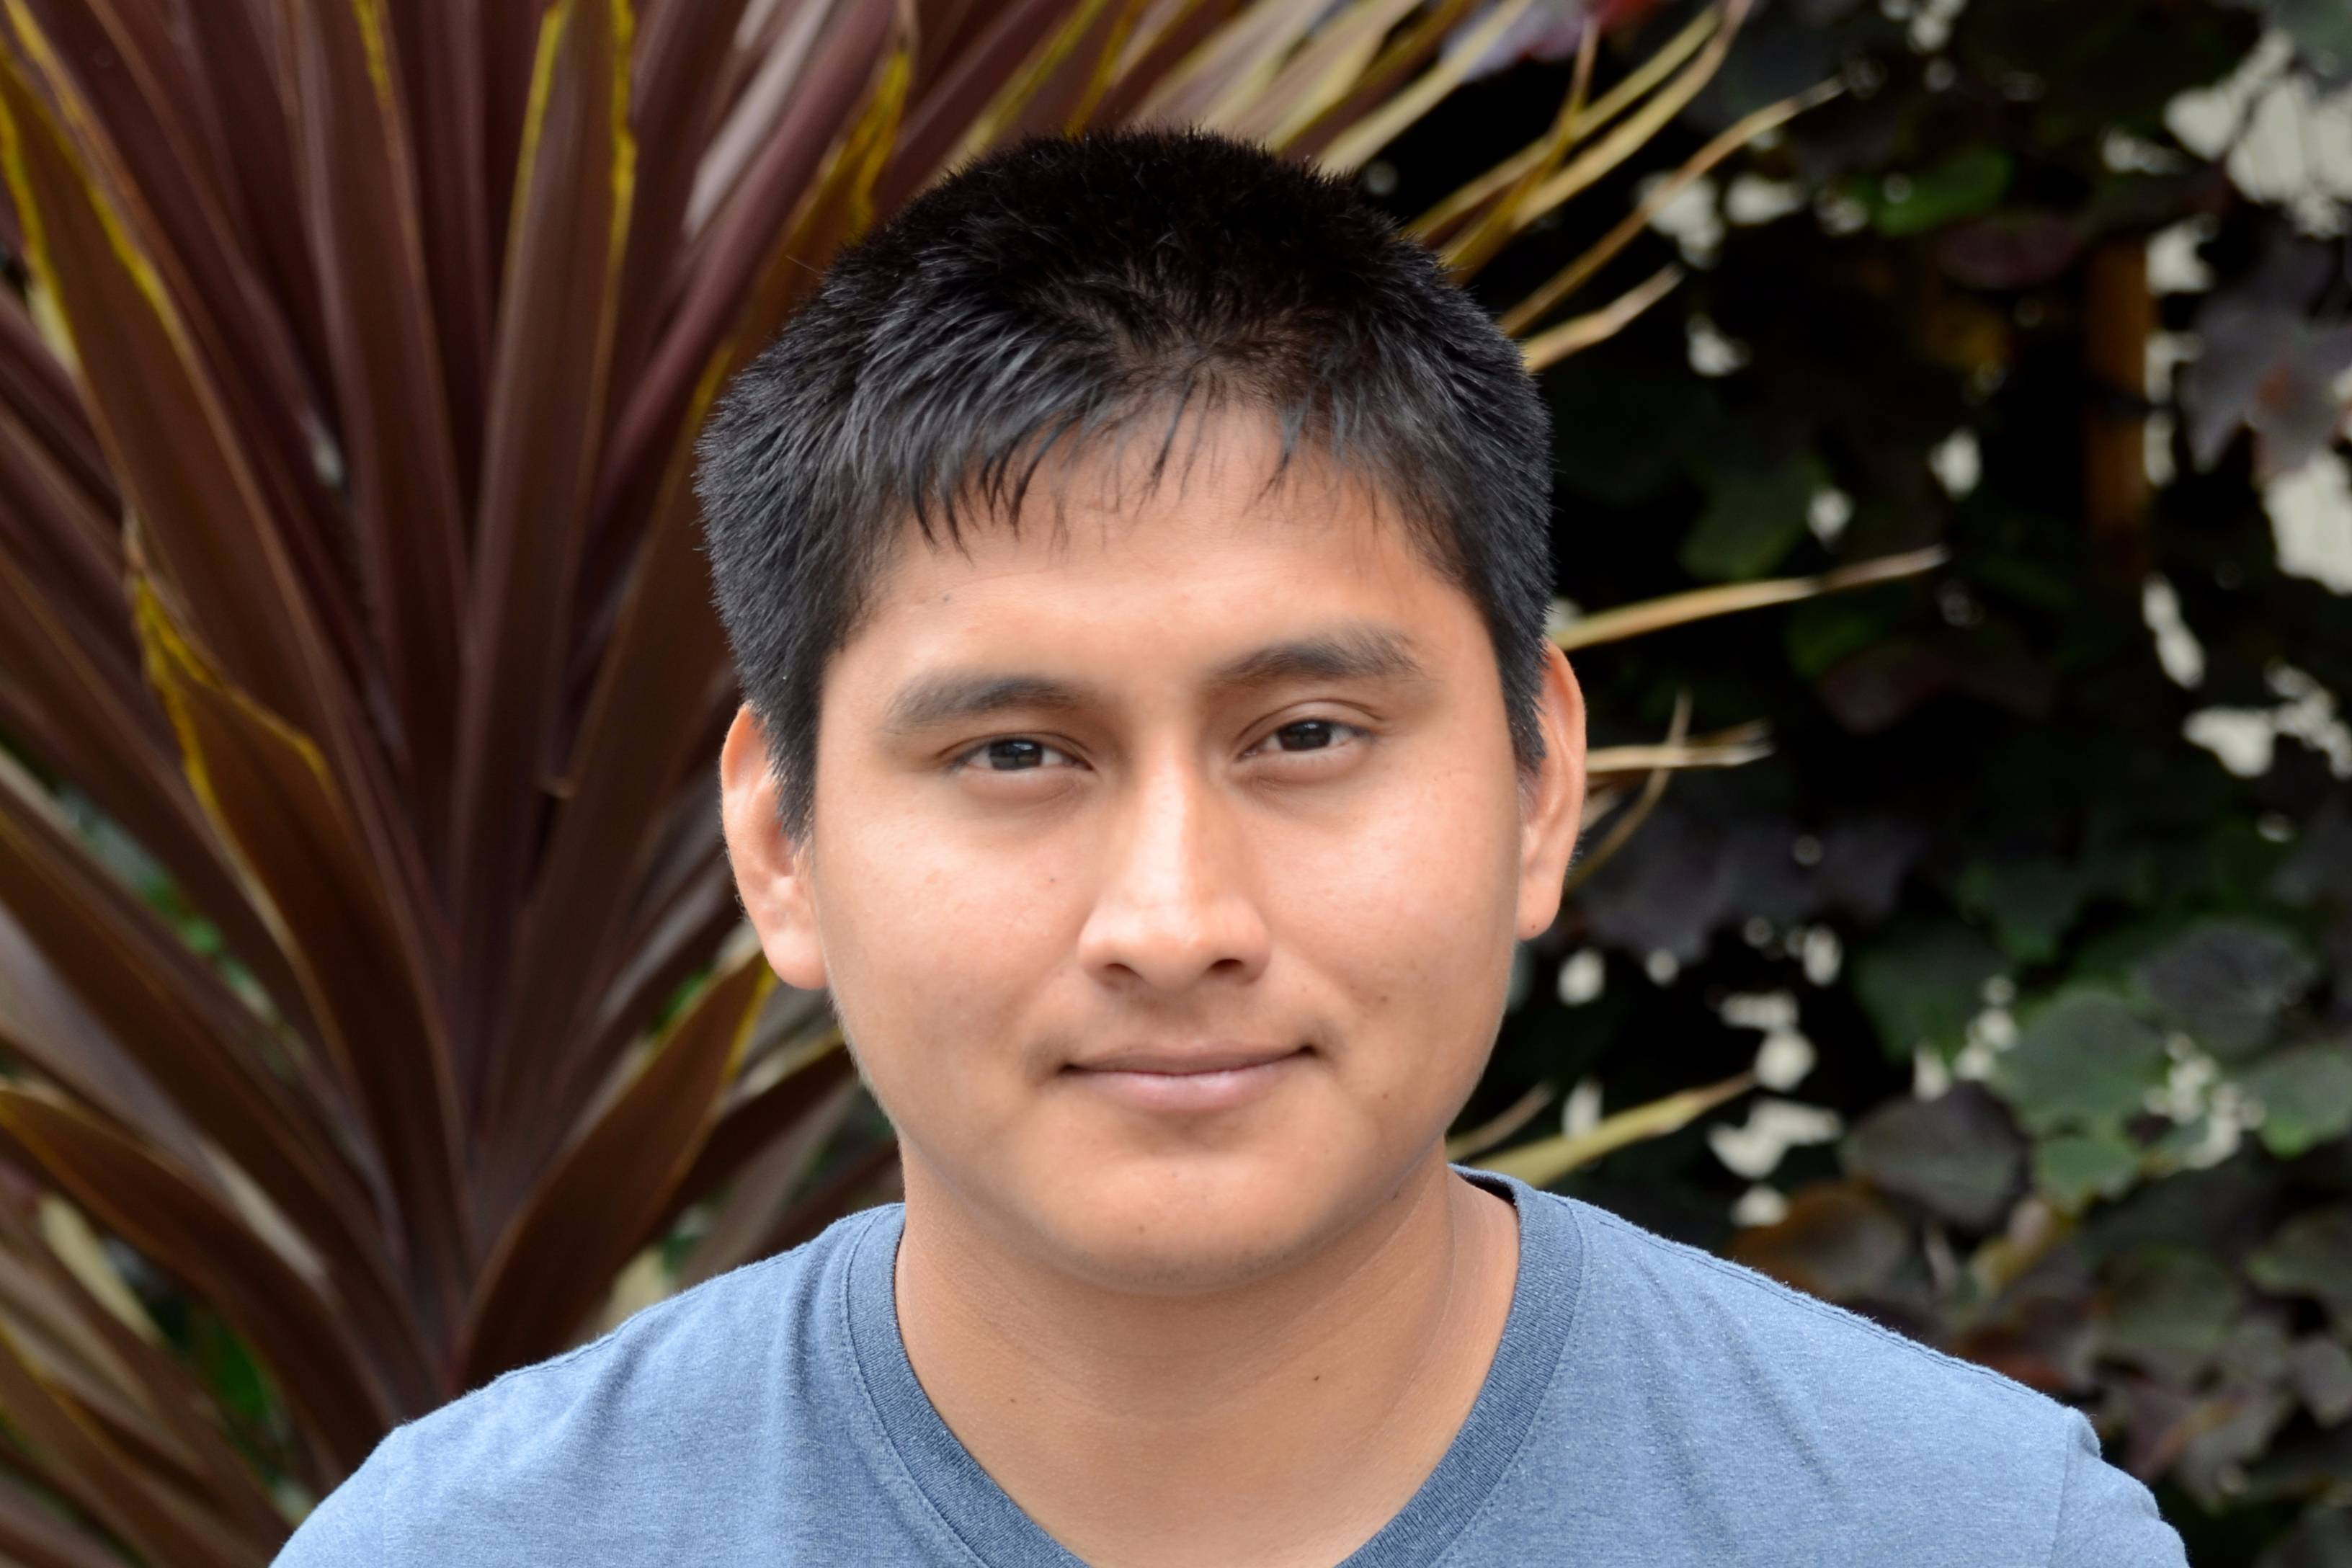 Gutierrez-Alfonzo is a chemical engineering major at Mesa College, with hopes to transfer to UCSD next fall semester. He is in his second year as a Bridges scholar and has been participating in this current research project for about three-quarters of a year.